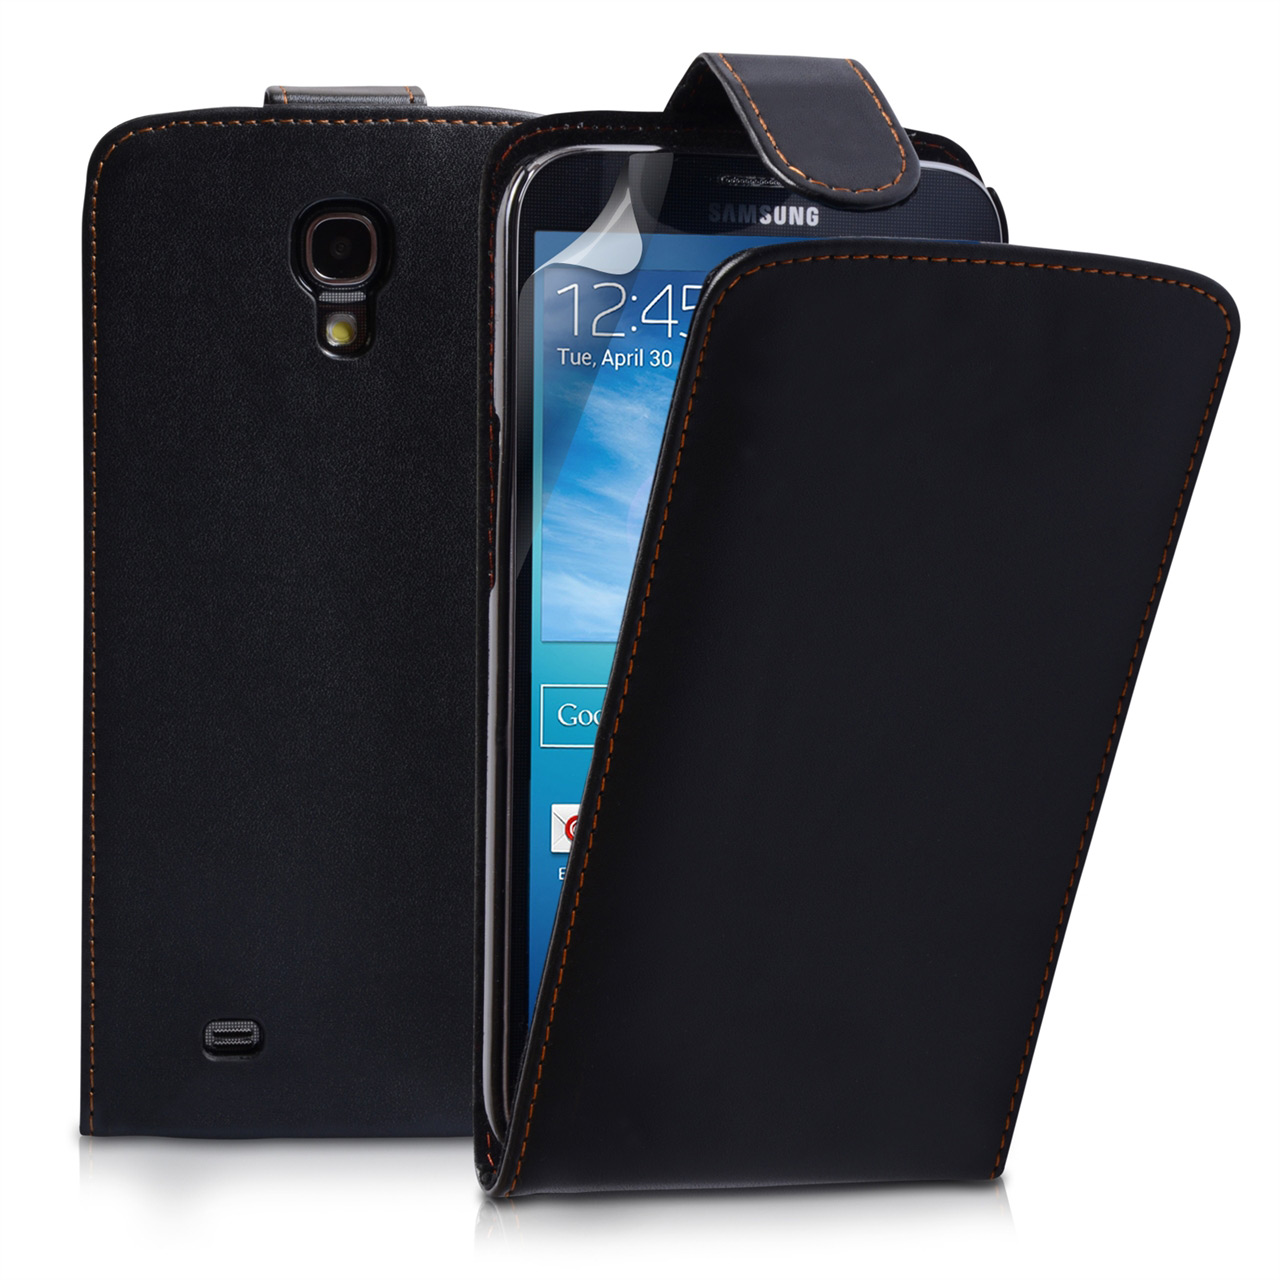 YouSave Samsung Galaxy Mega 6.3 Leather Effect Flip Case - Black